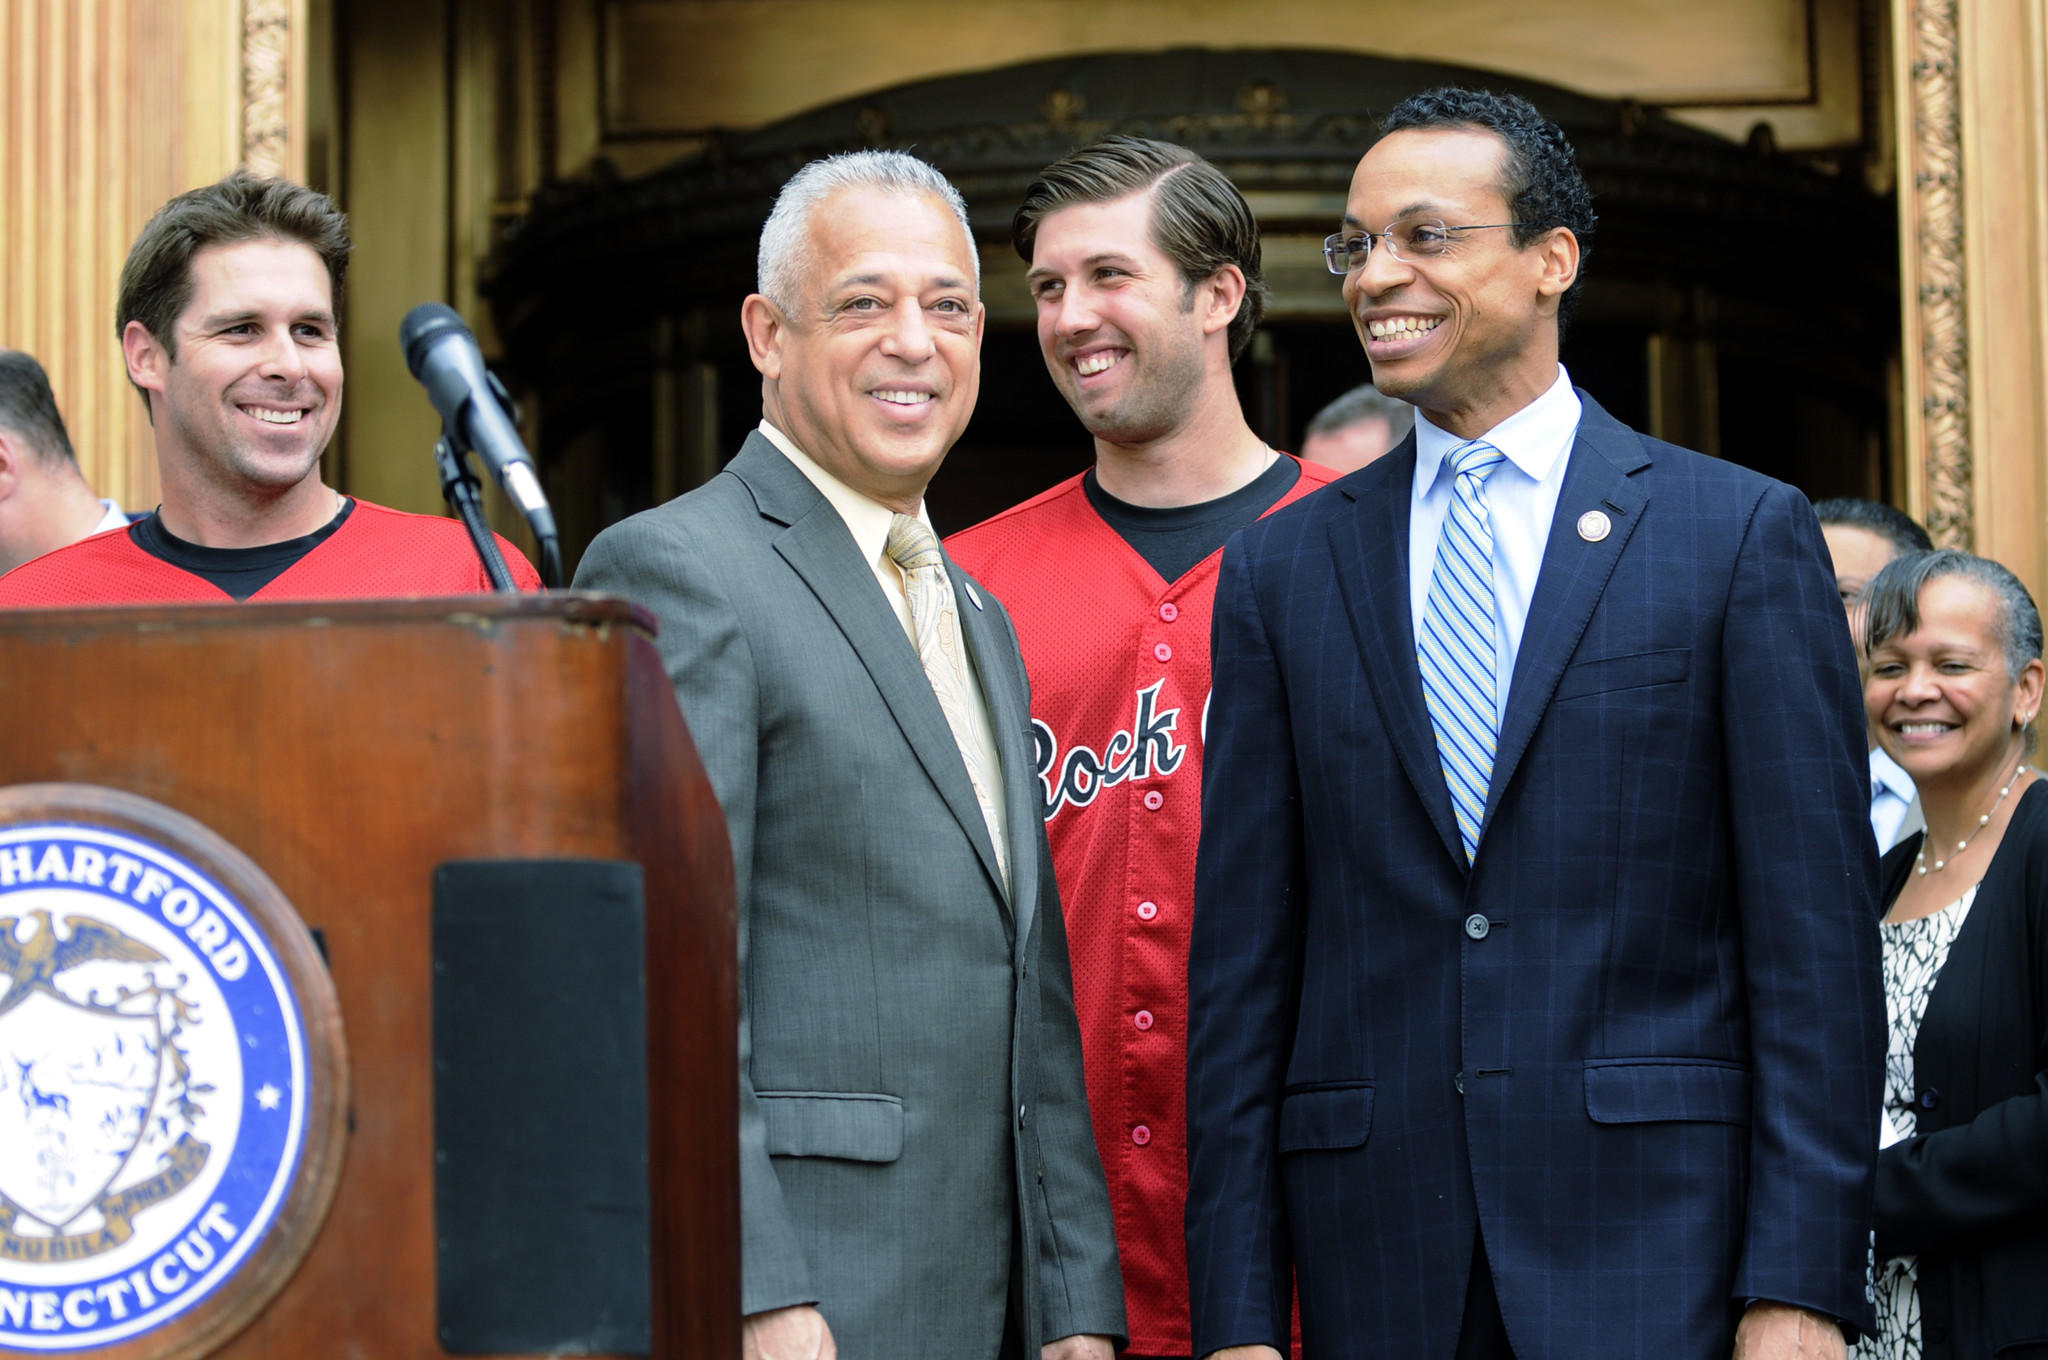 Hartford Mayor Pedro Segarra (second from left) along with Rock Cats players Nate Hanson and Pat Dean, and Hartford Common Council President Shawn Woodin, are all smiles at the announcement of the city's plan to build a stadium for the team.